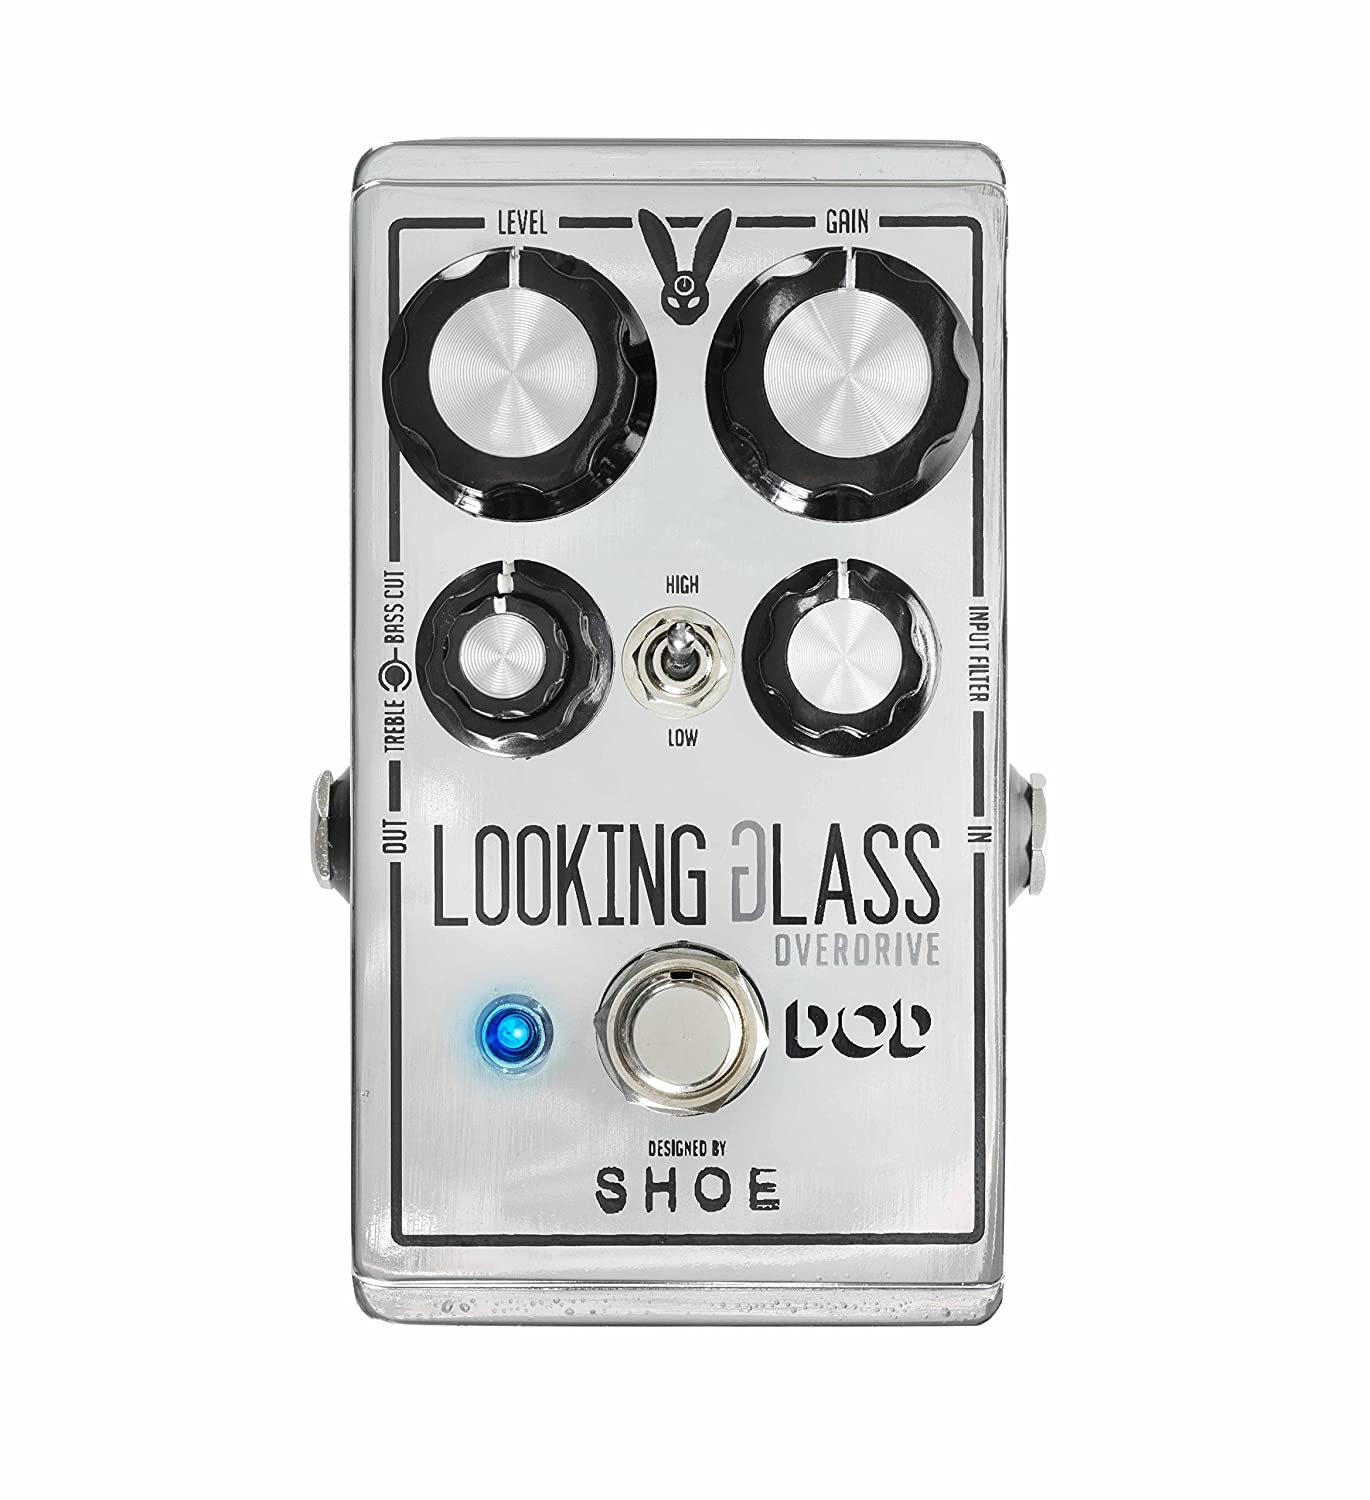 Top 13 Best Overdrive Pedal Reviews in 2020 12